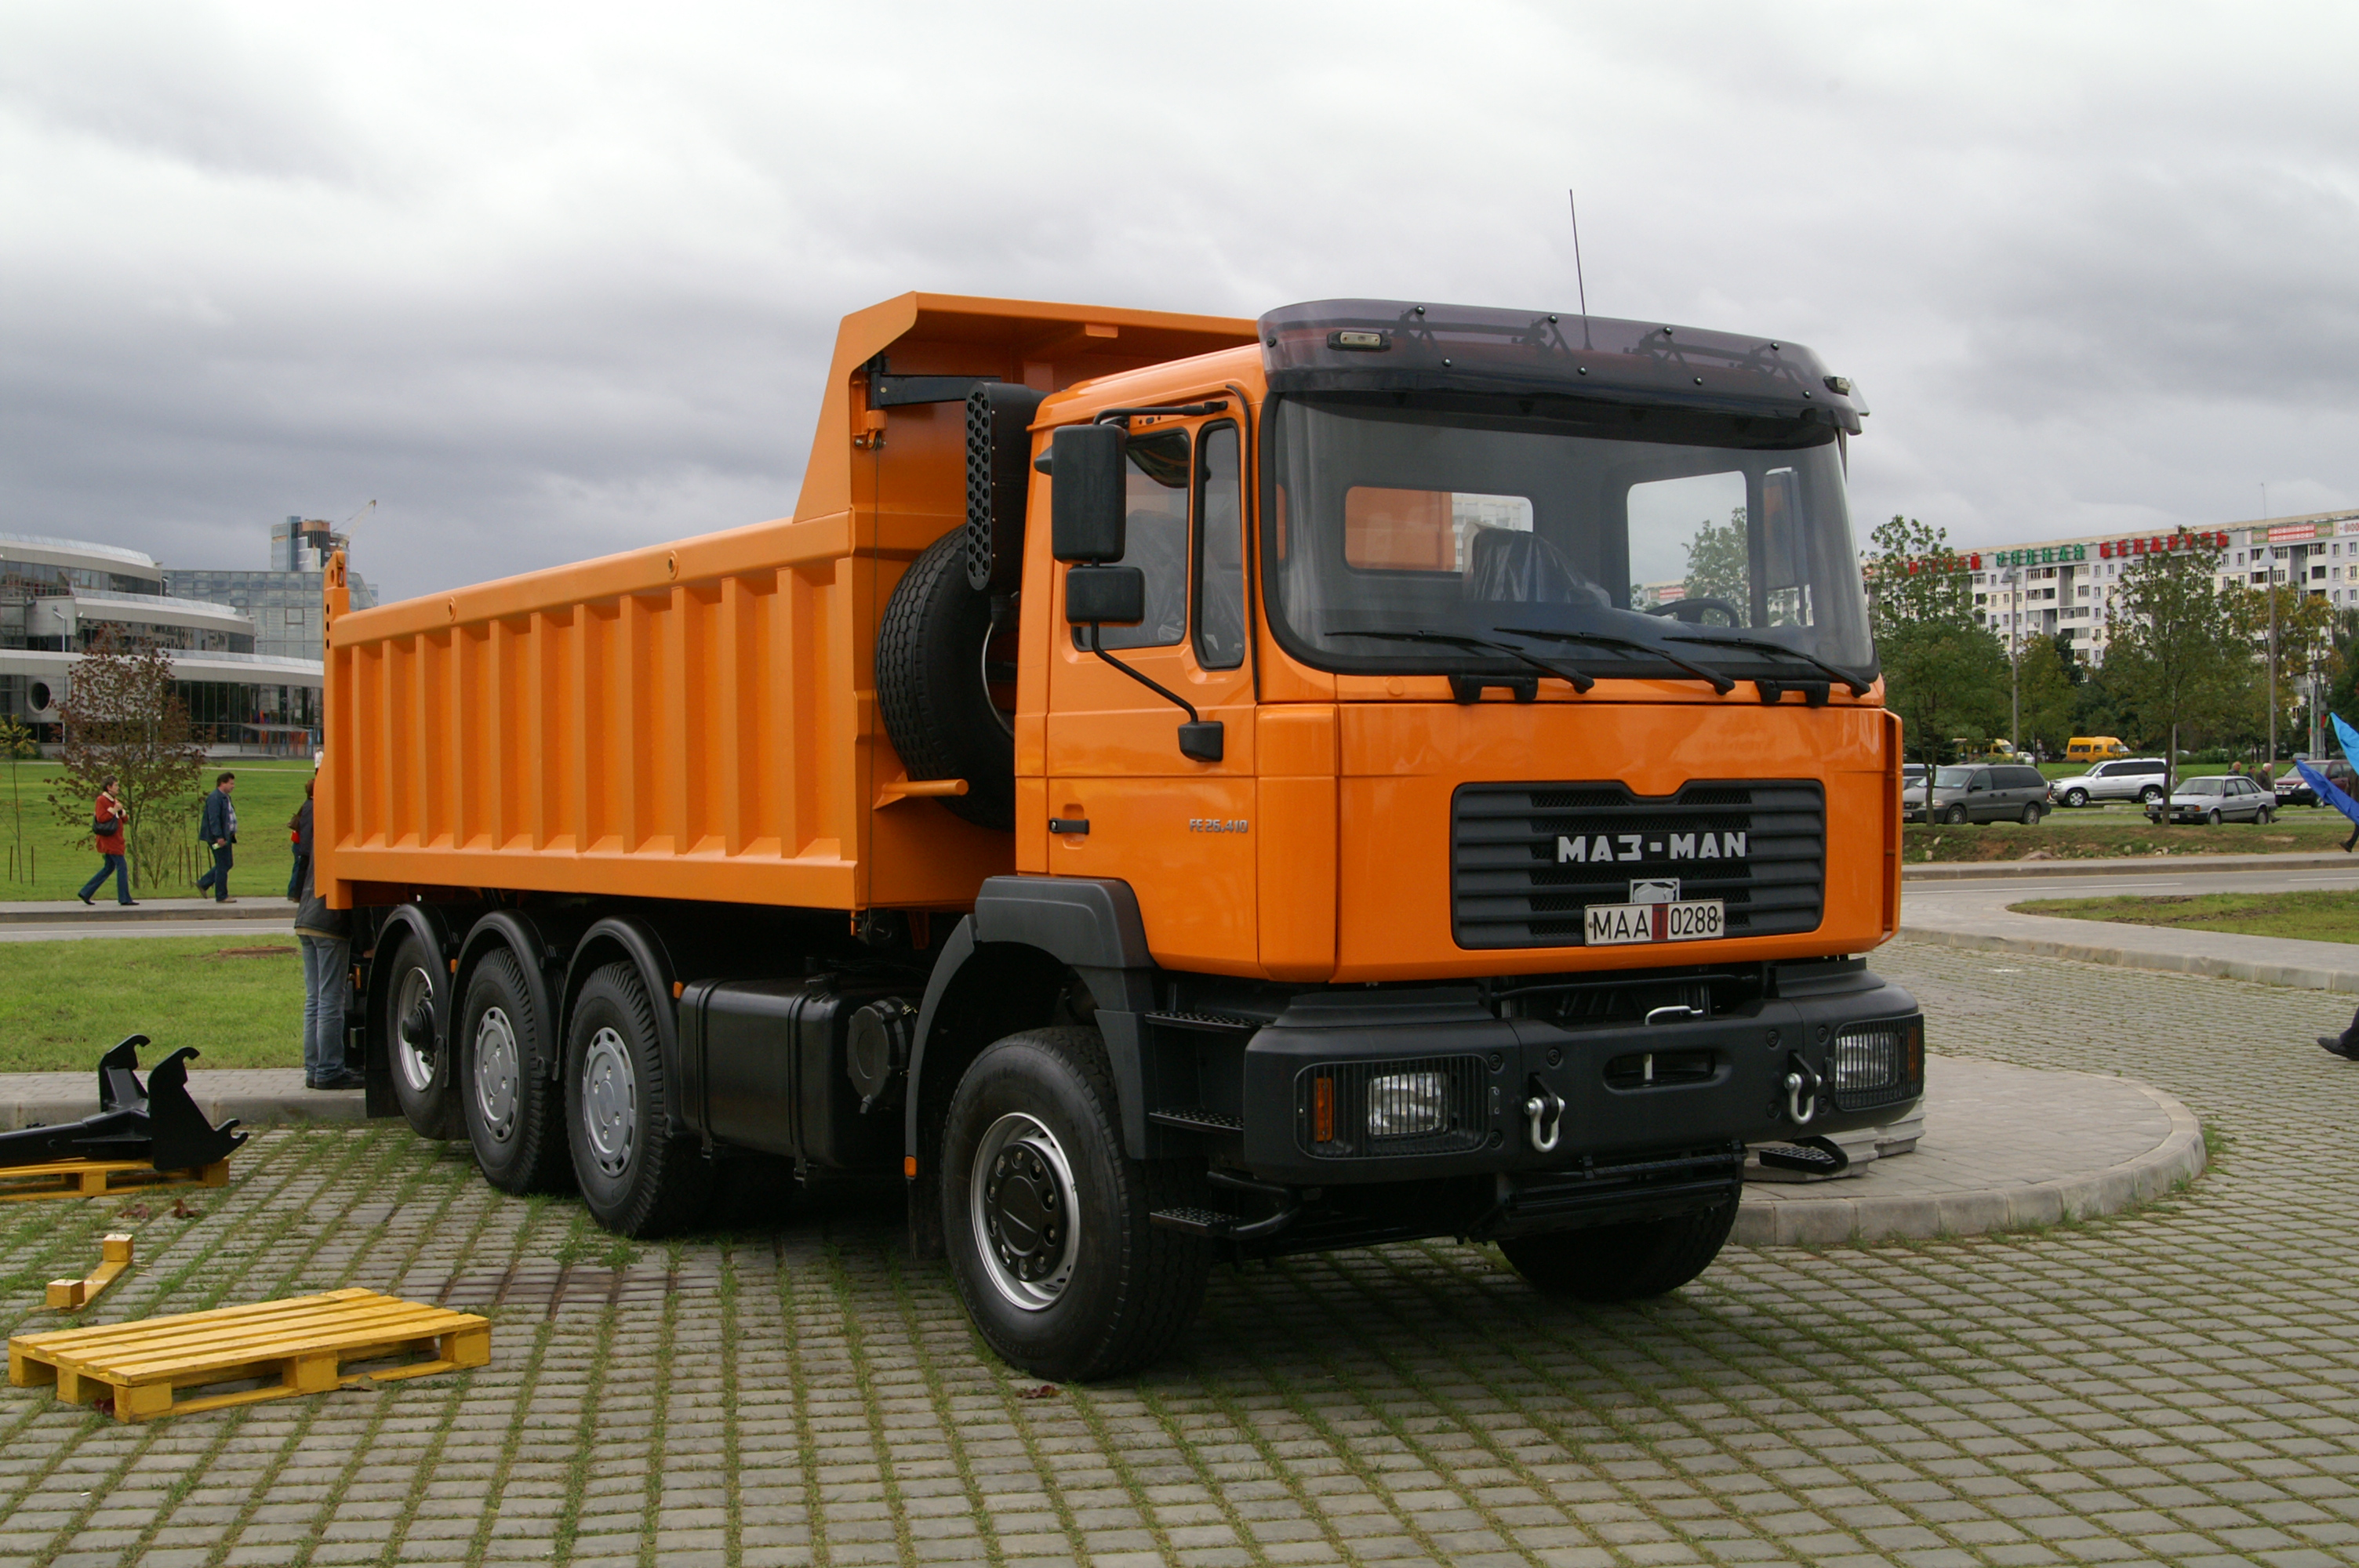 File:MAZ-MAN truck.JPG - Wikimedia Commons